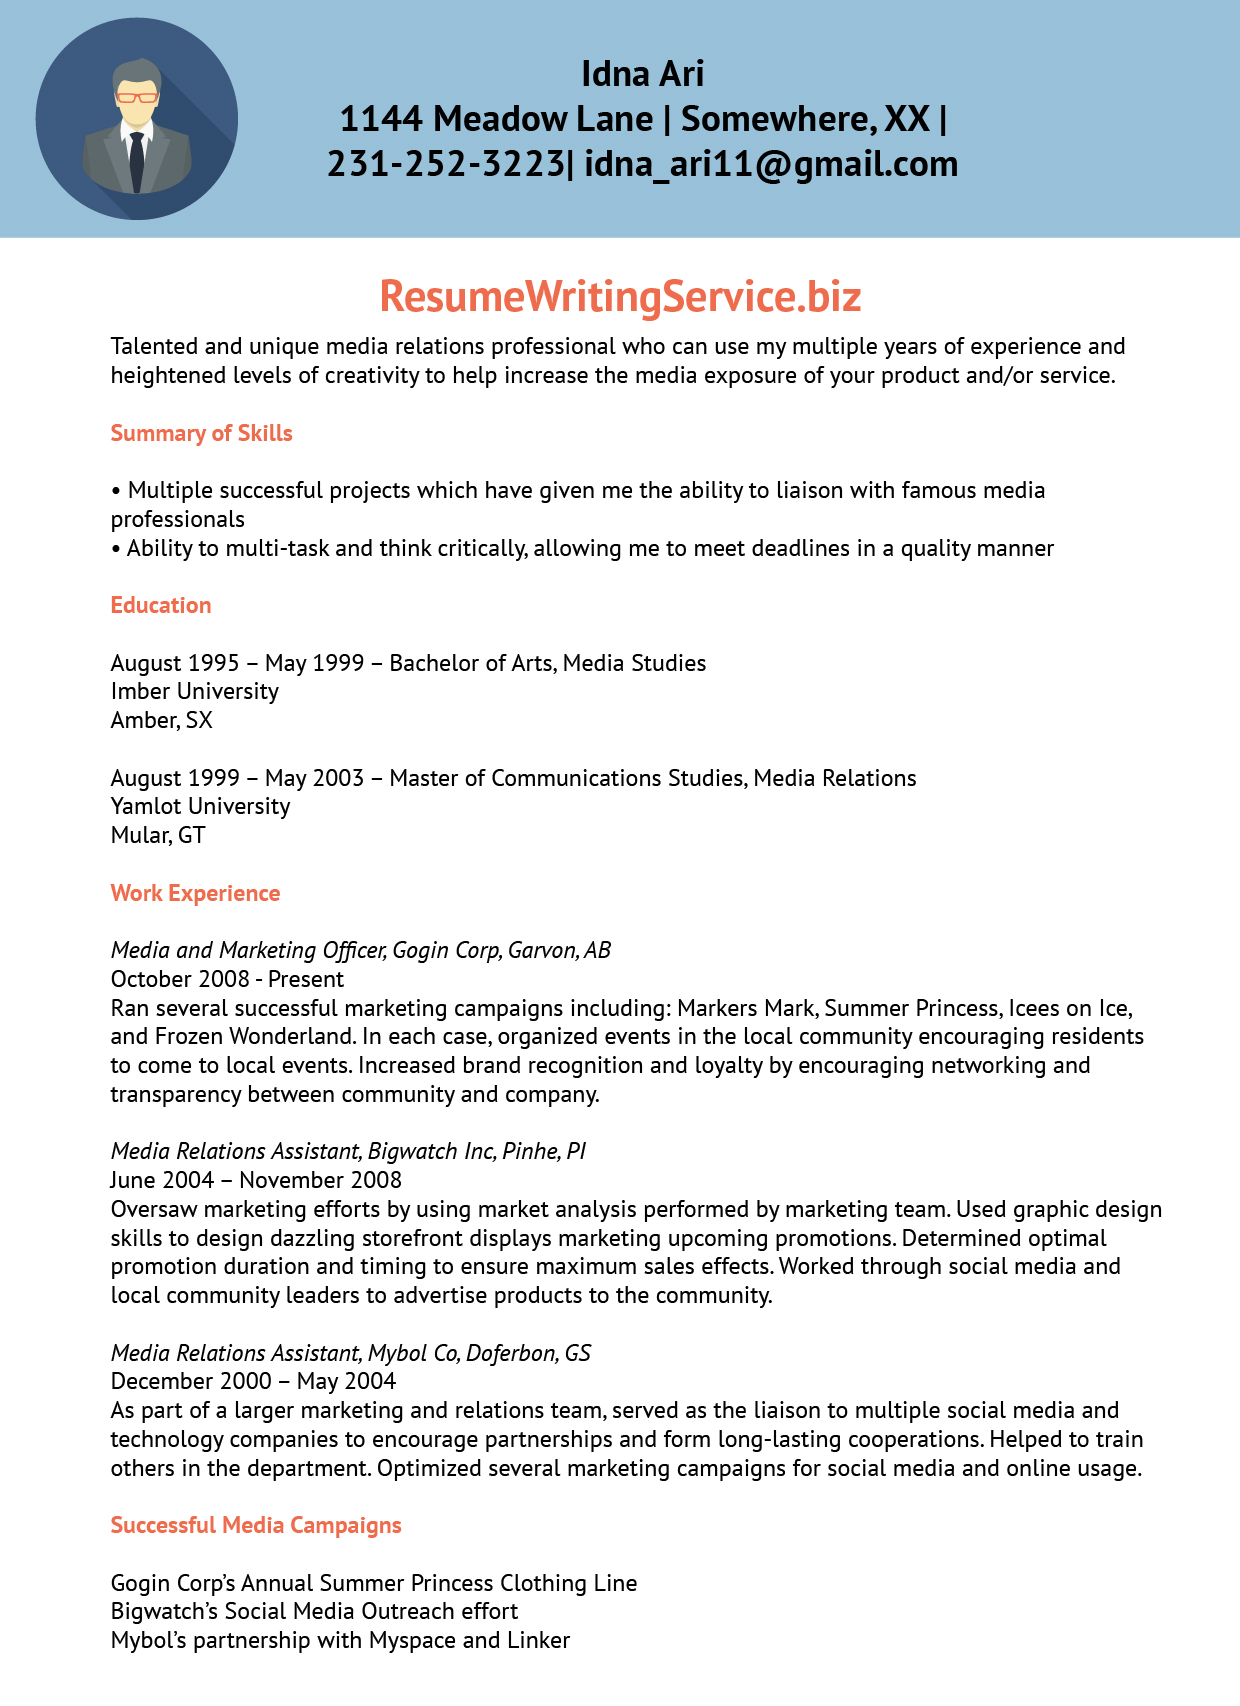 Resume Writing Services Usa Resume Marketing Services